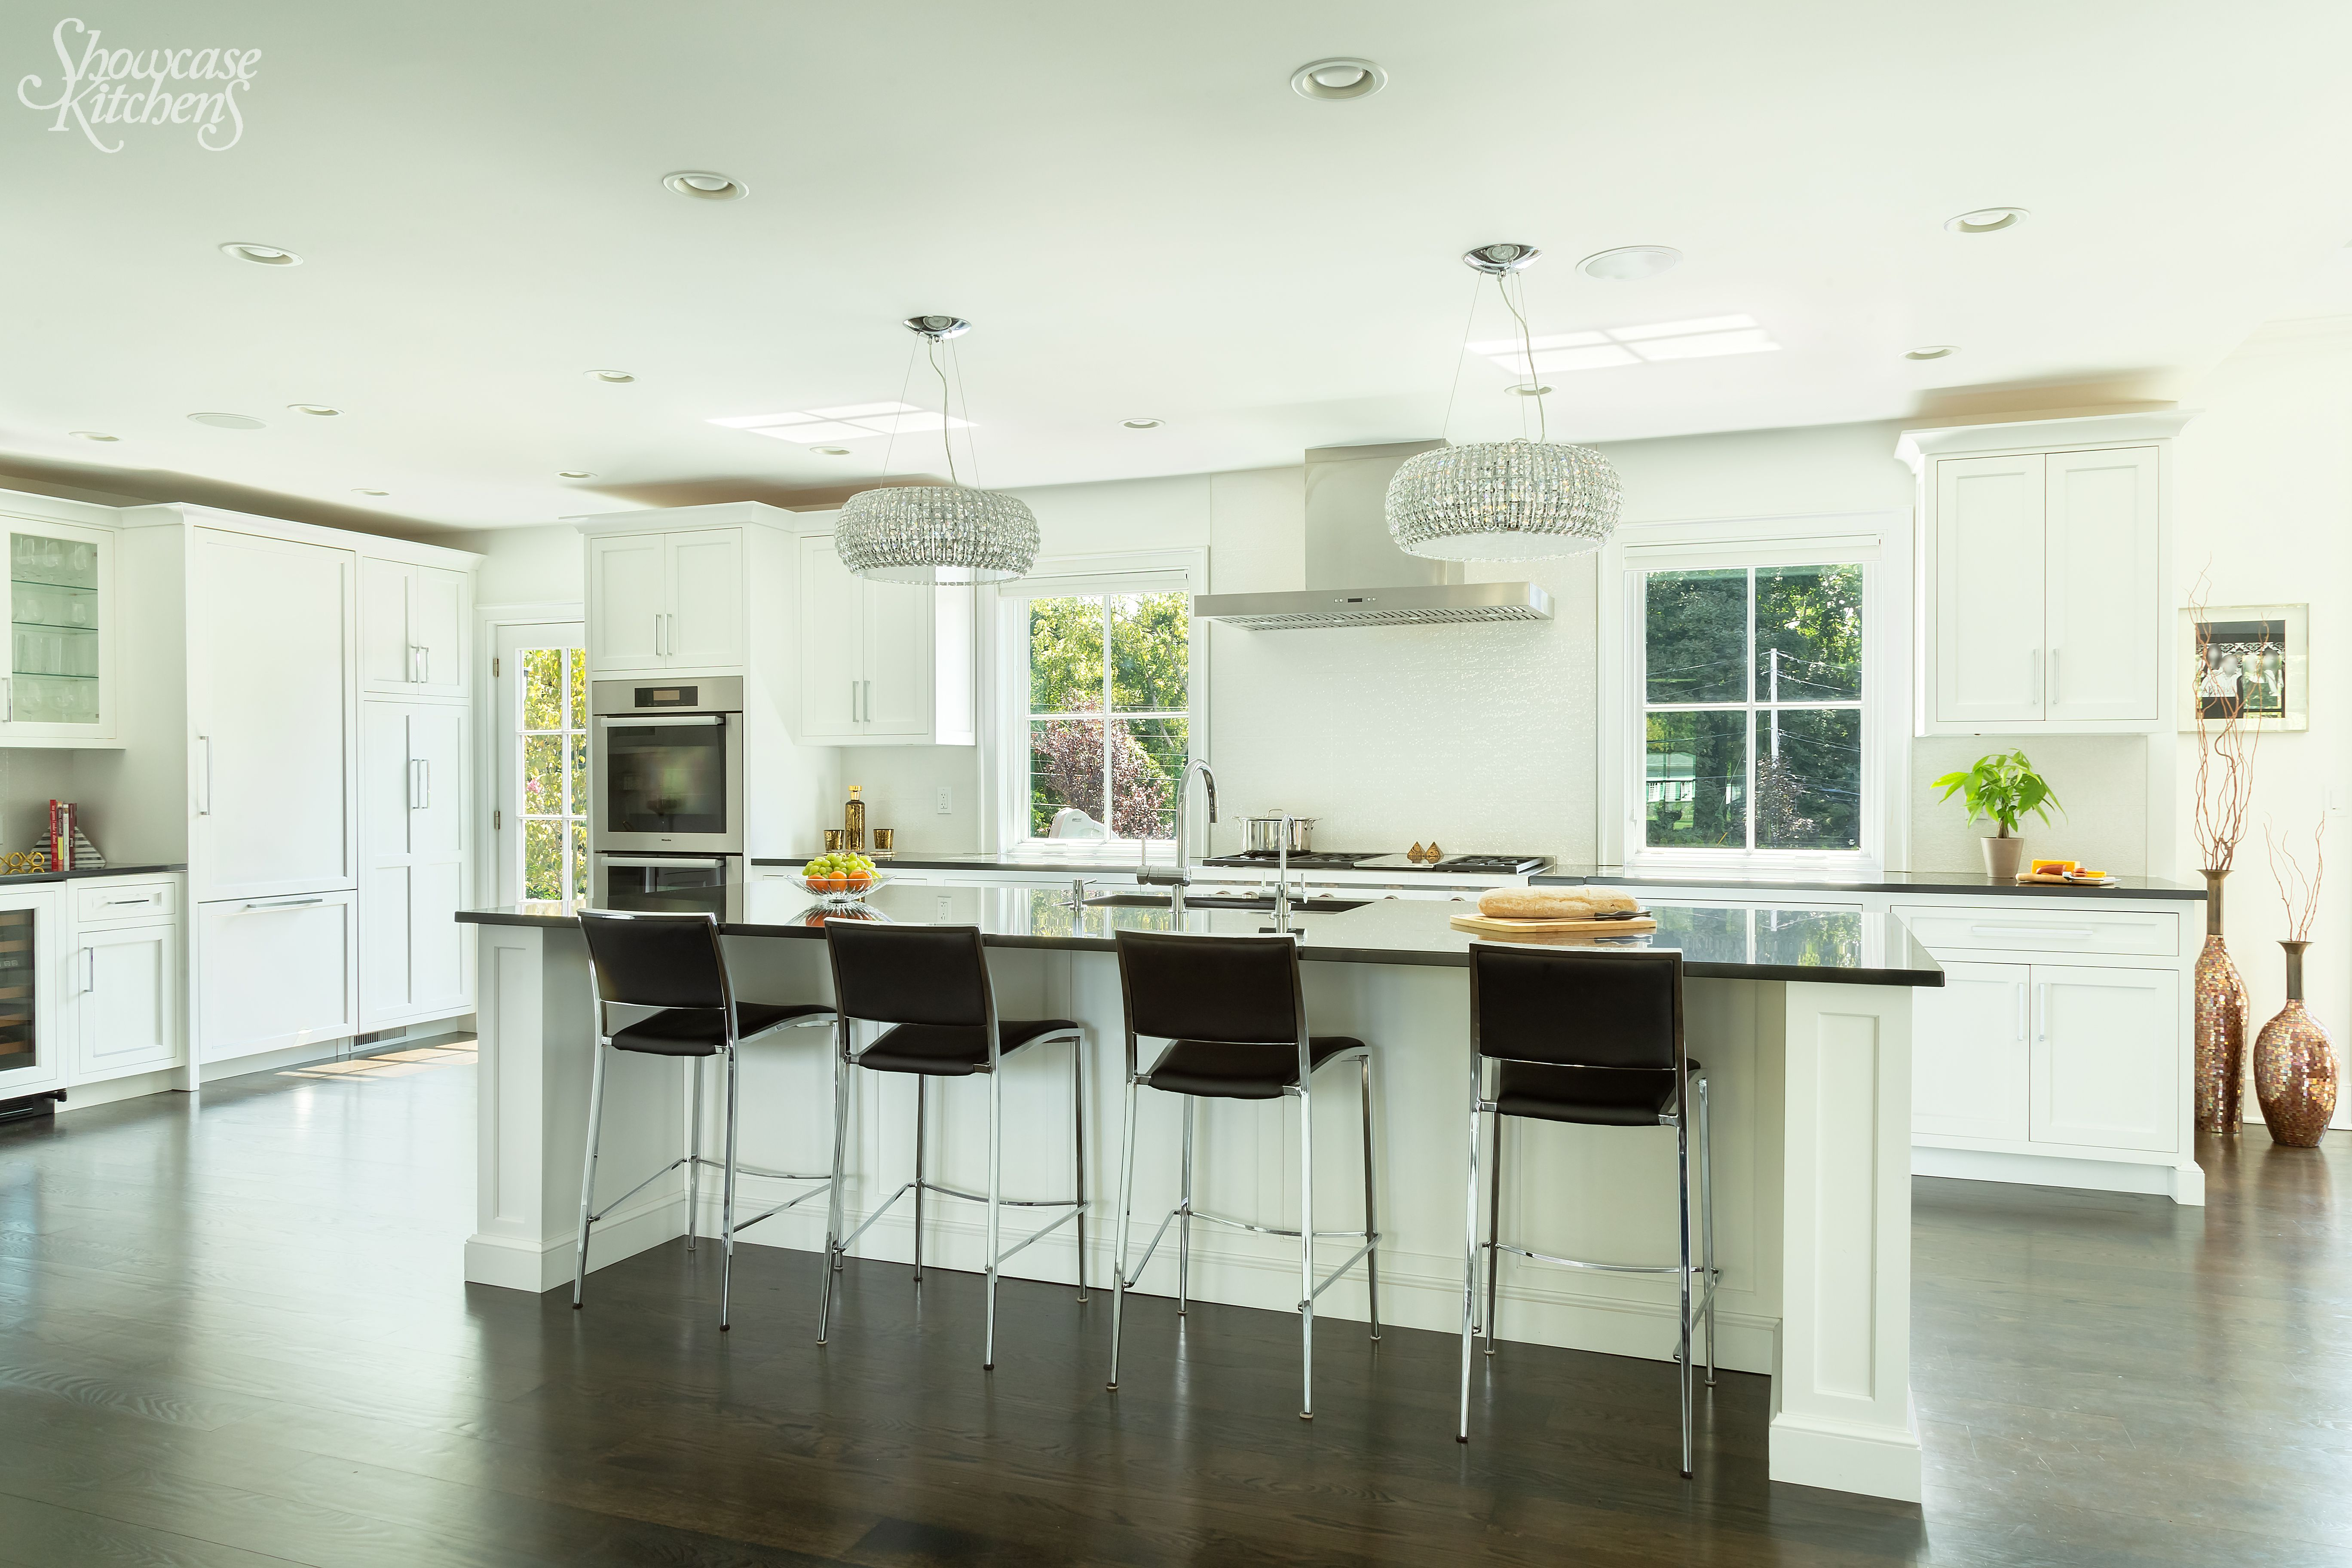 black granite countertops and stools add a pop of black in this transitional white kitchen on kitchen decor black countertop id=76974